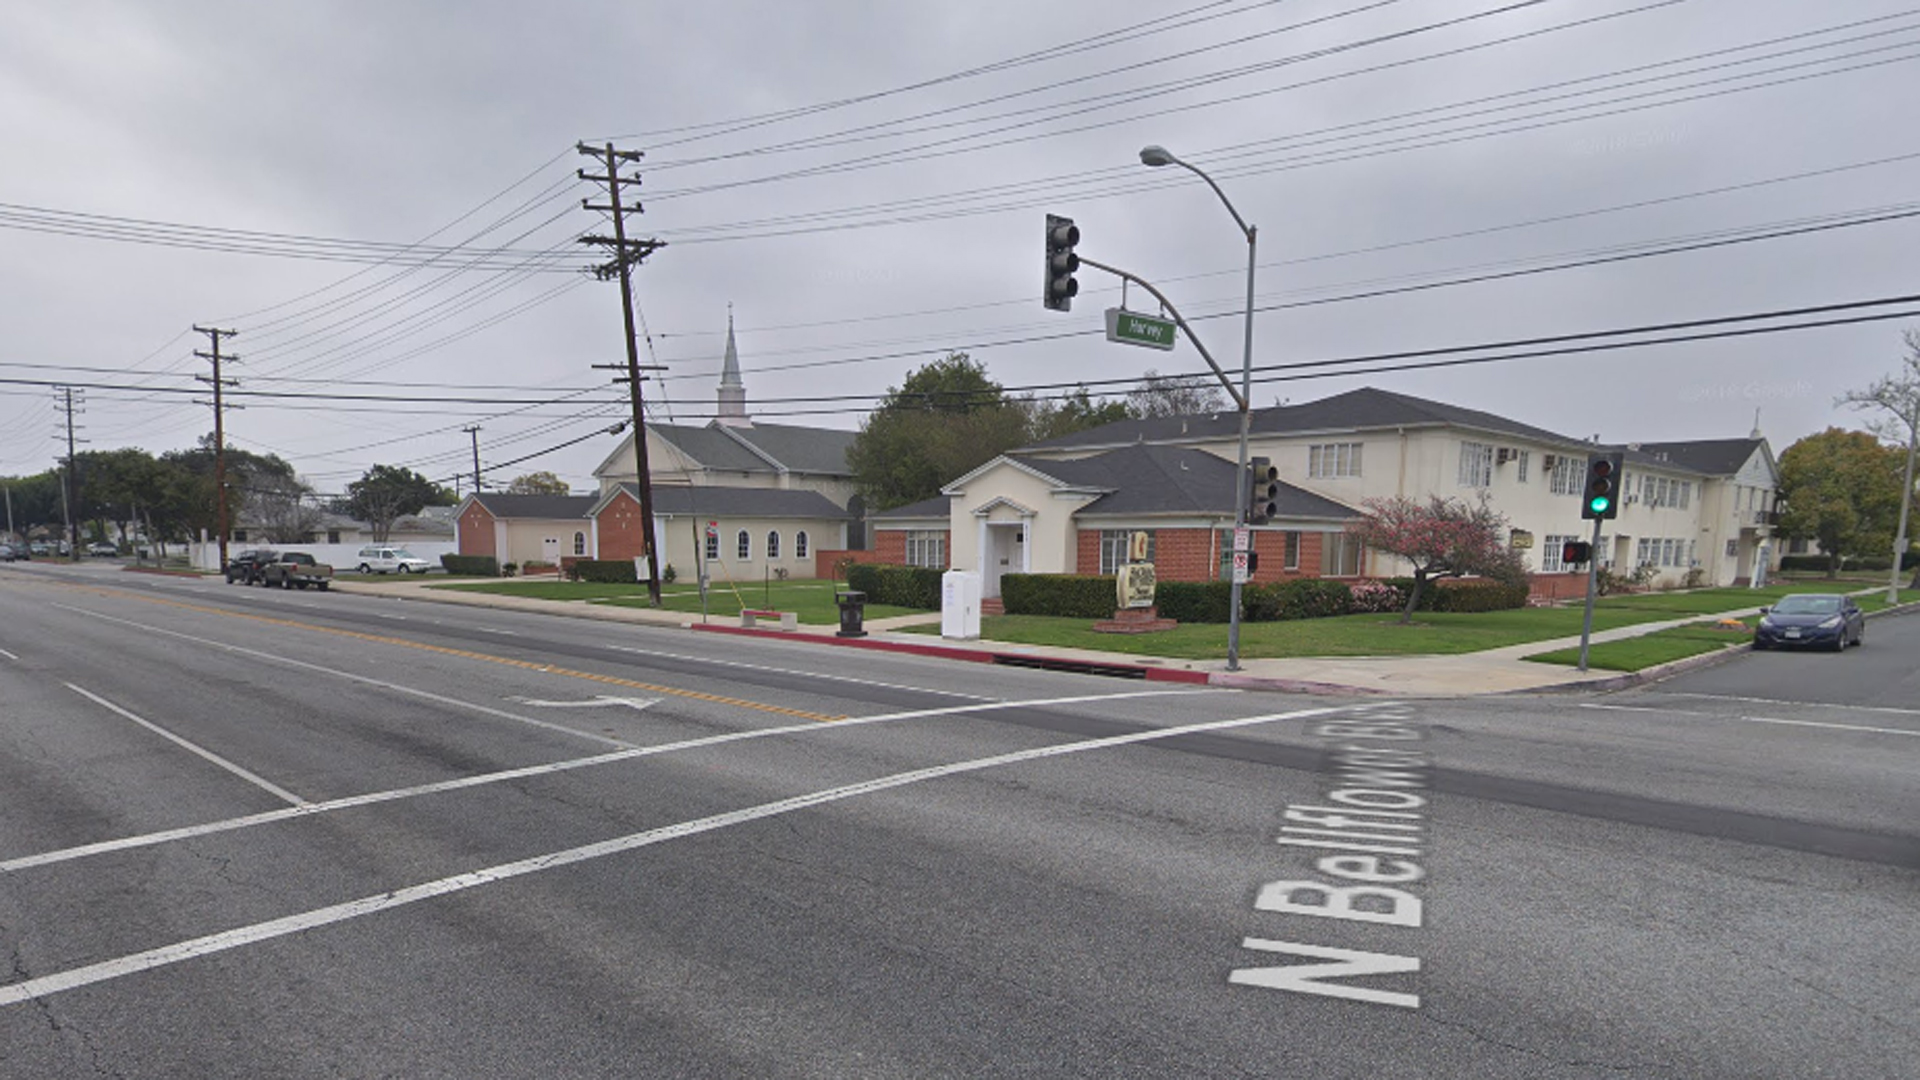 The intersection of Harvey Way and Bellflower Boulevard is shown in a Street View image from Google Maps.